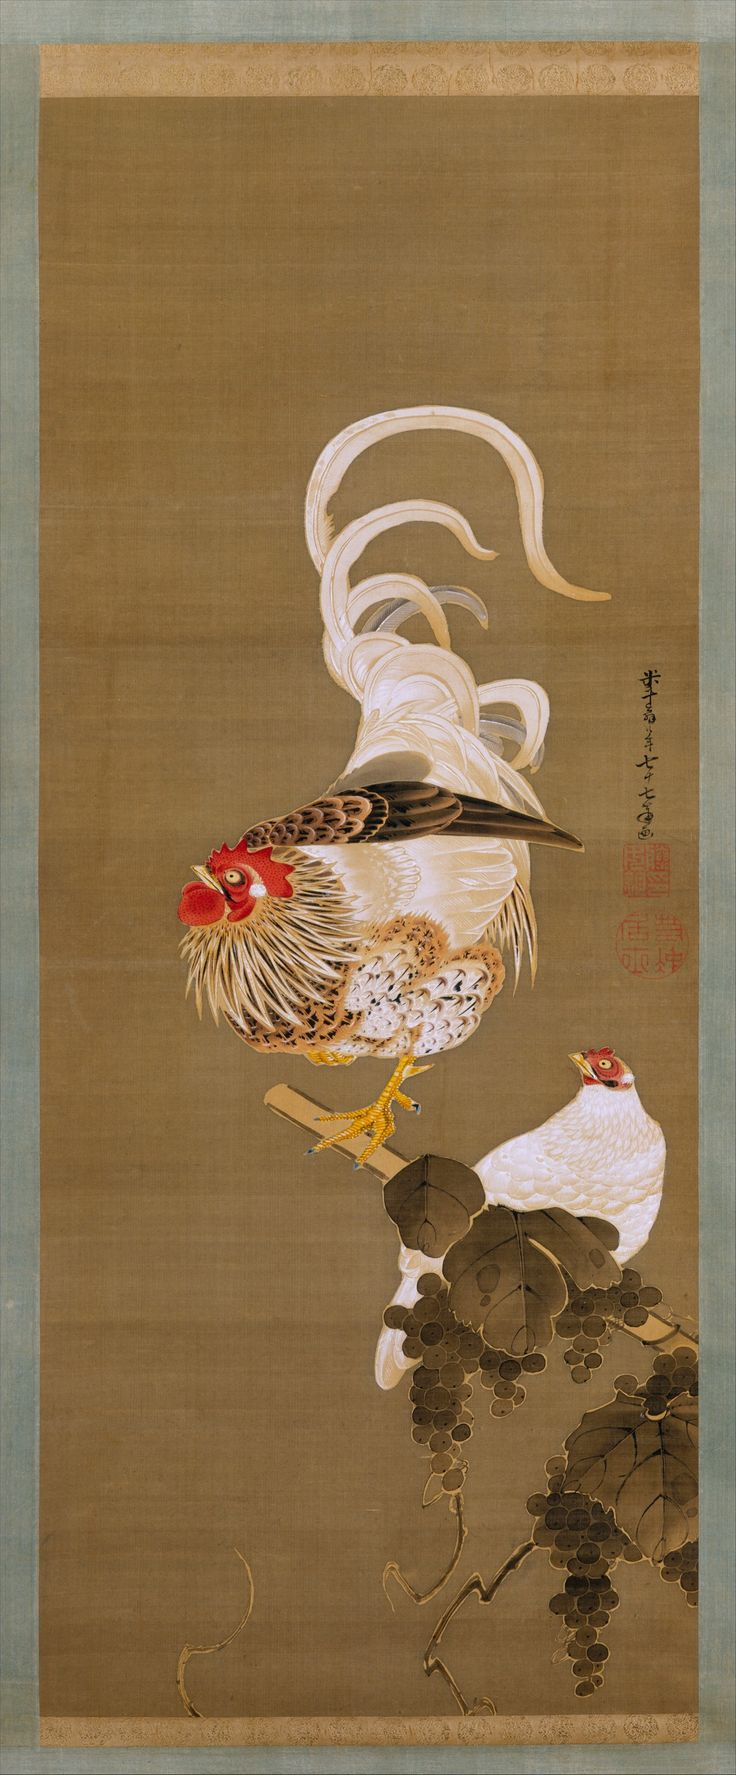 Itō Jakuchū | Hen and Rooster with Grapevine | Japan | Edo period (1615–1868) | The Metropolitan Museum of Art